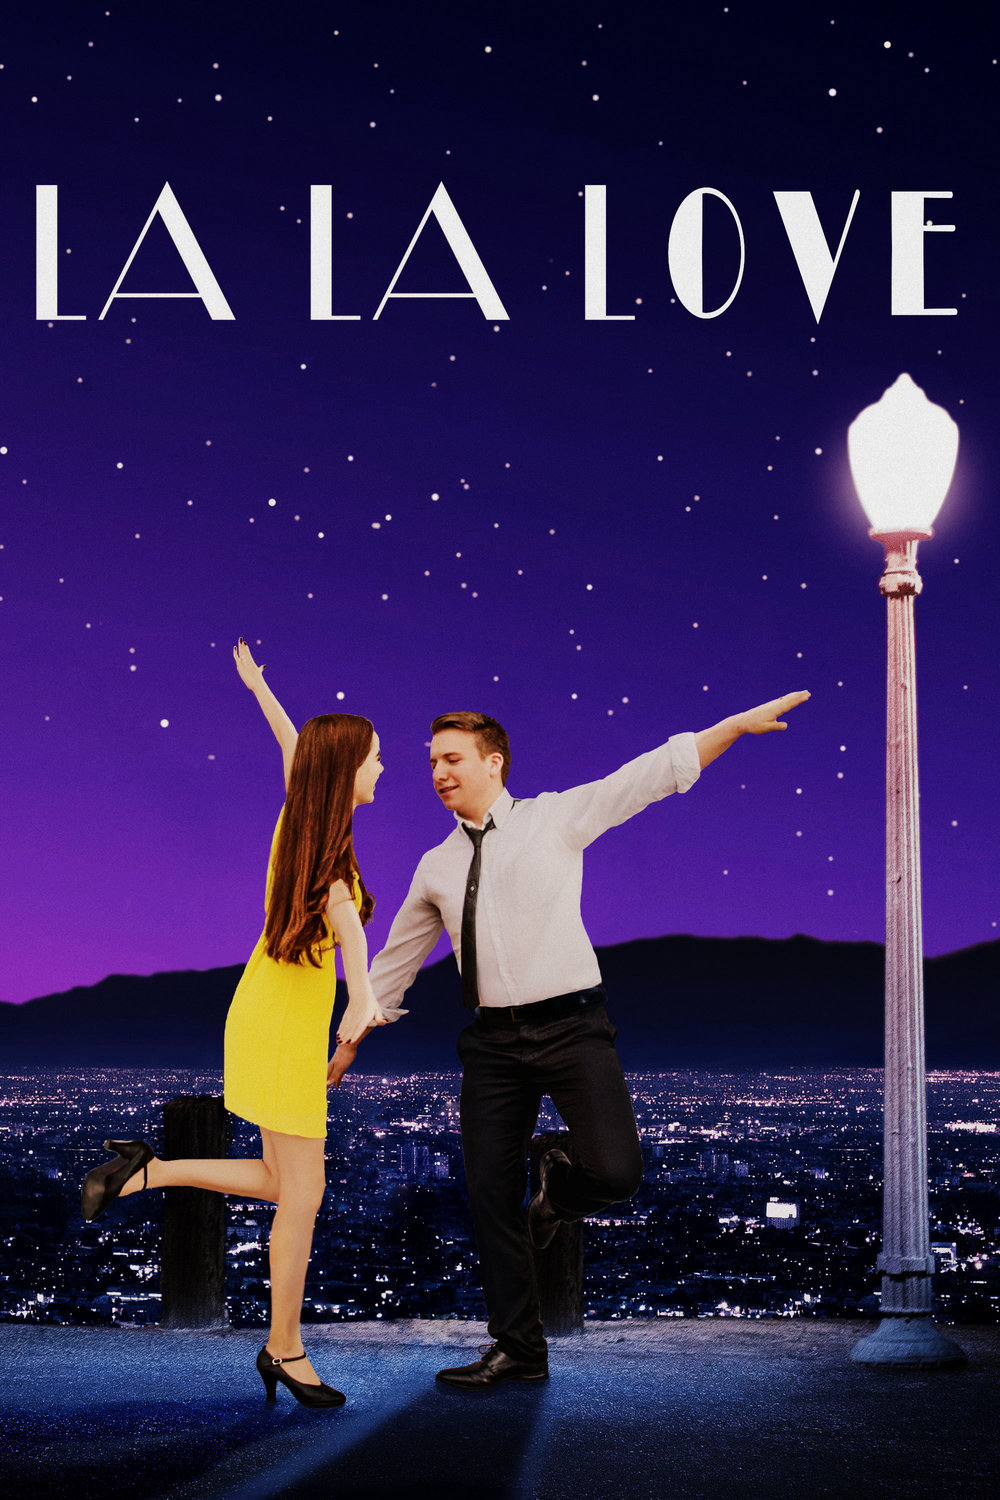 La La Love Movie Poster2.jpg